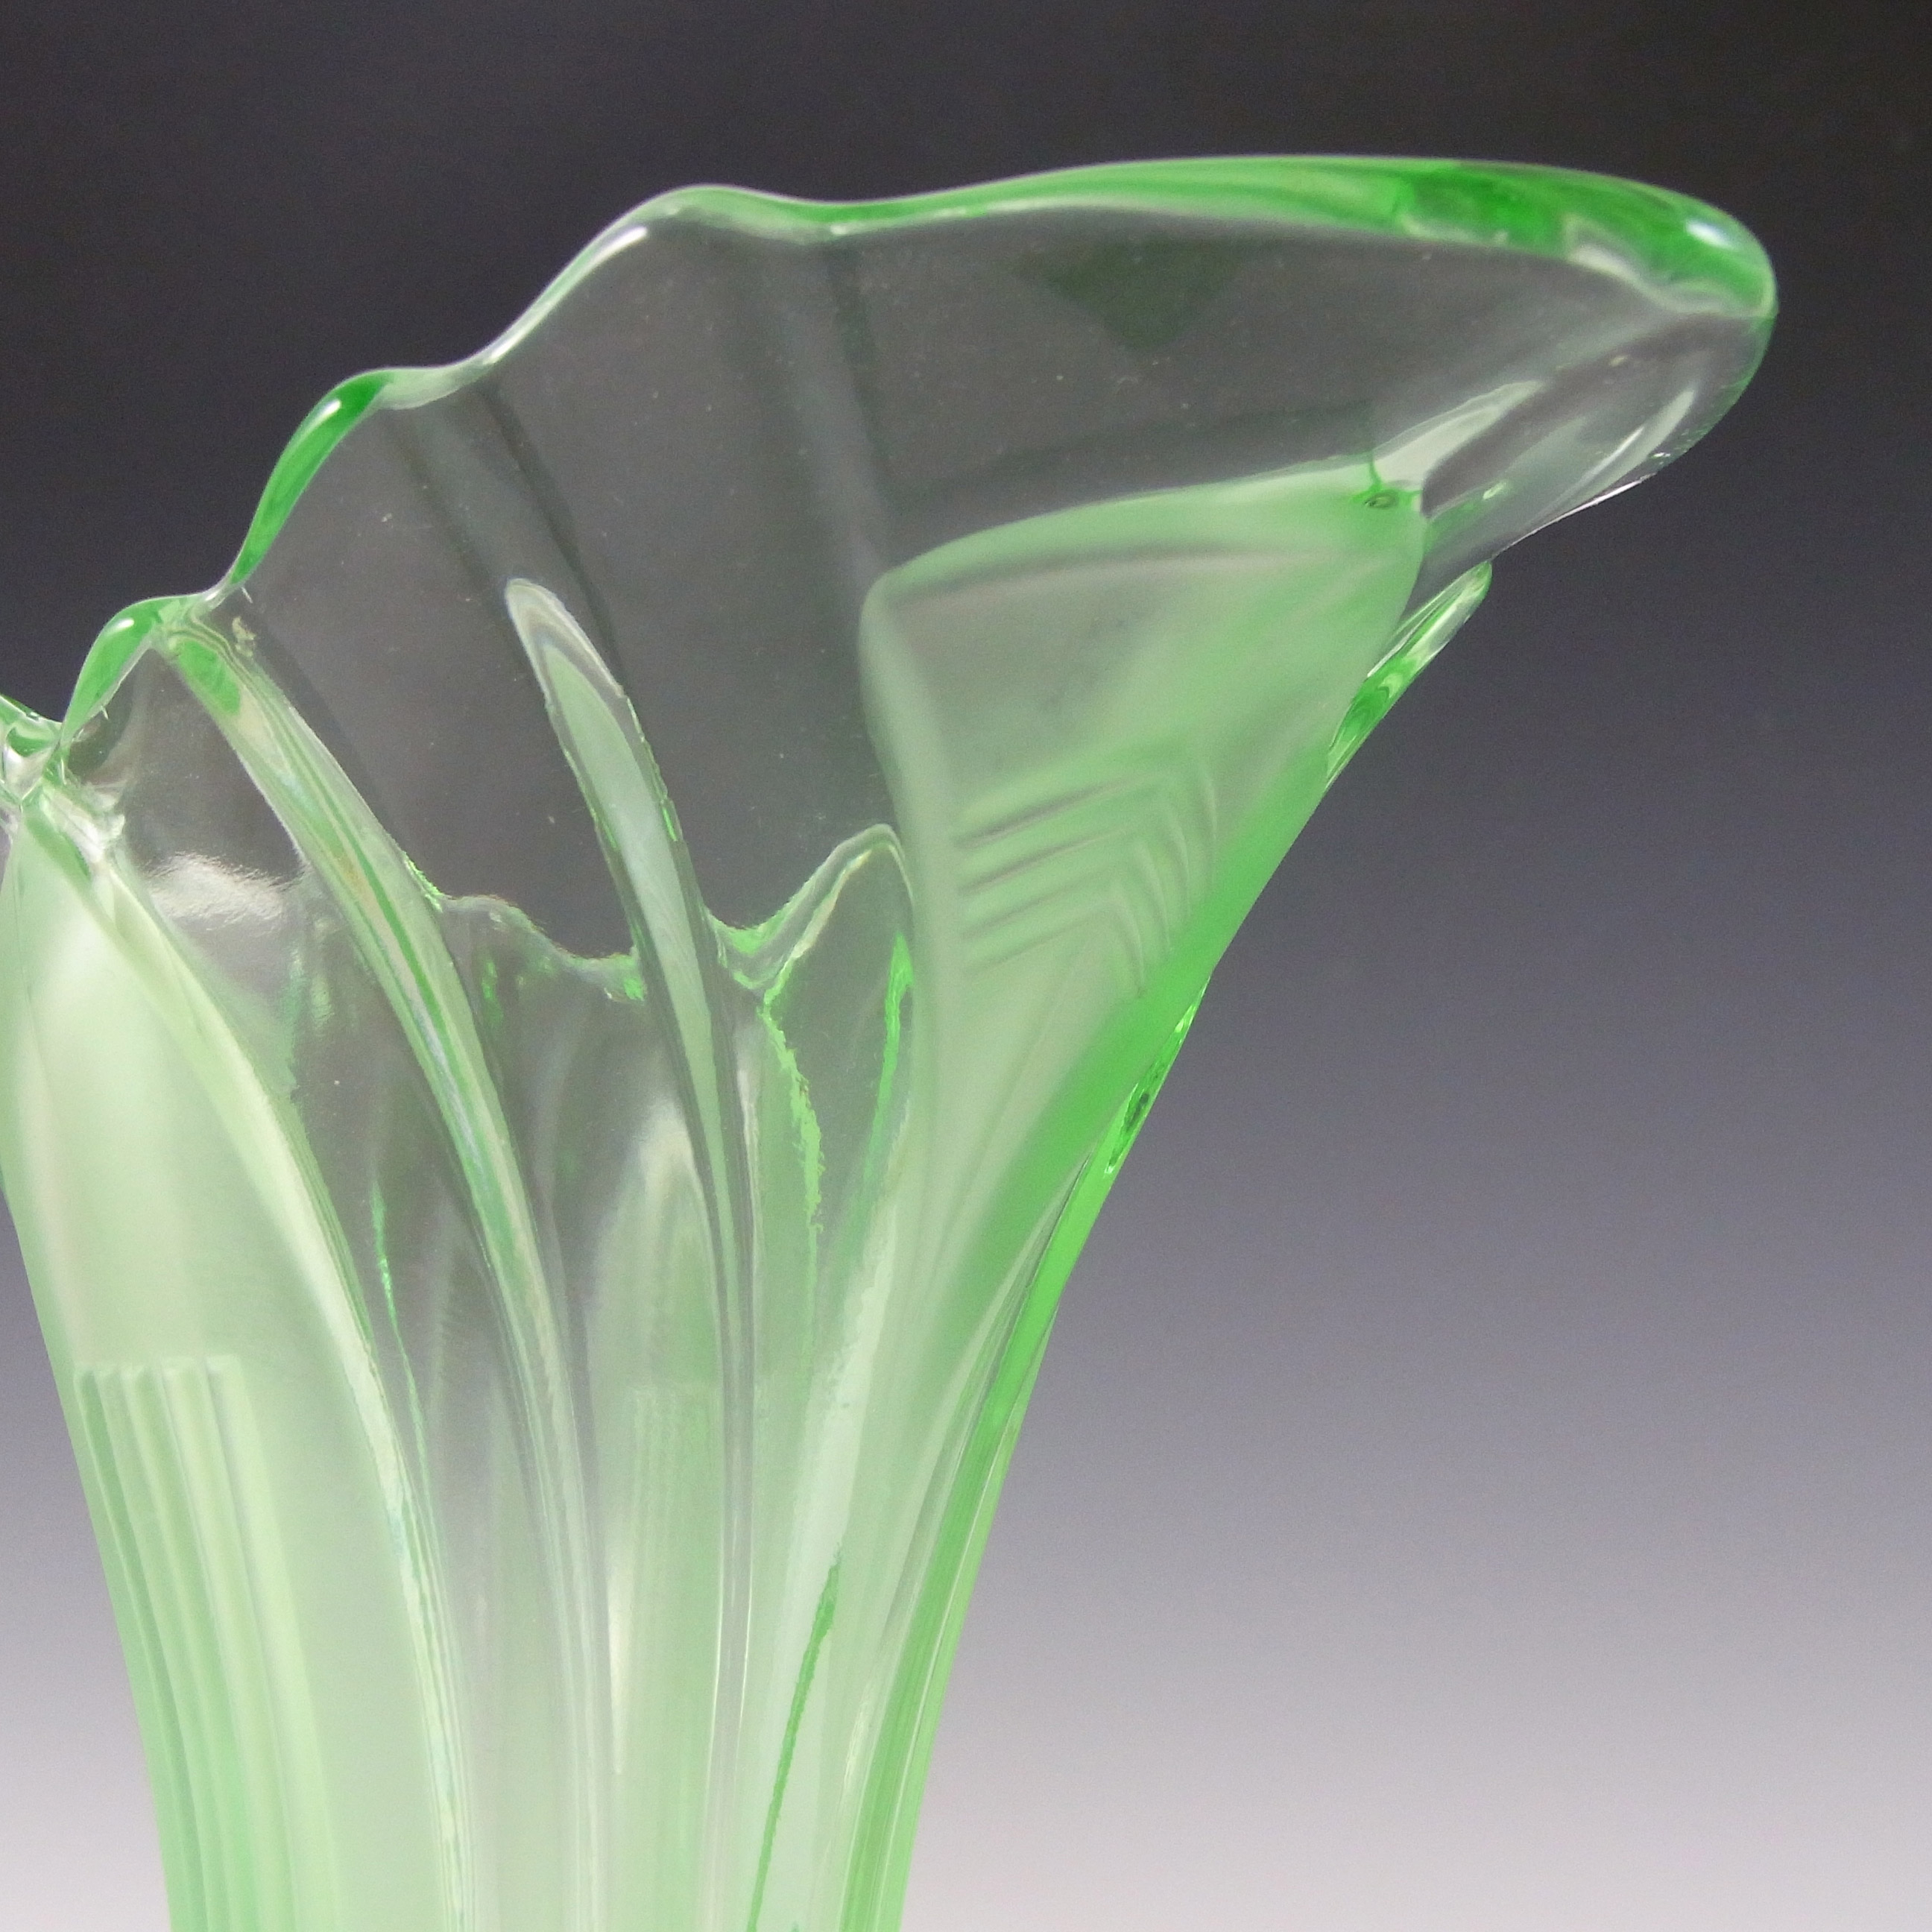 "Walther & Sohne 6.5"" 1930's Art Deco Green Glass 'Greta' Vase - Click Image to Close"